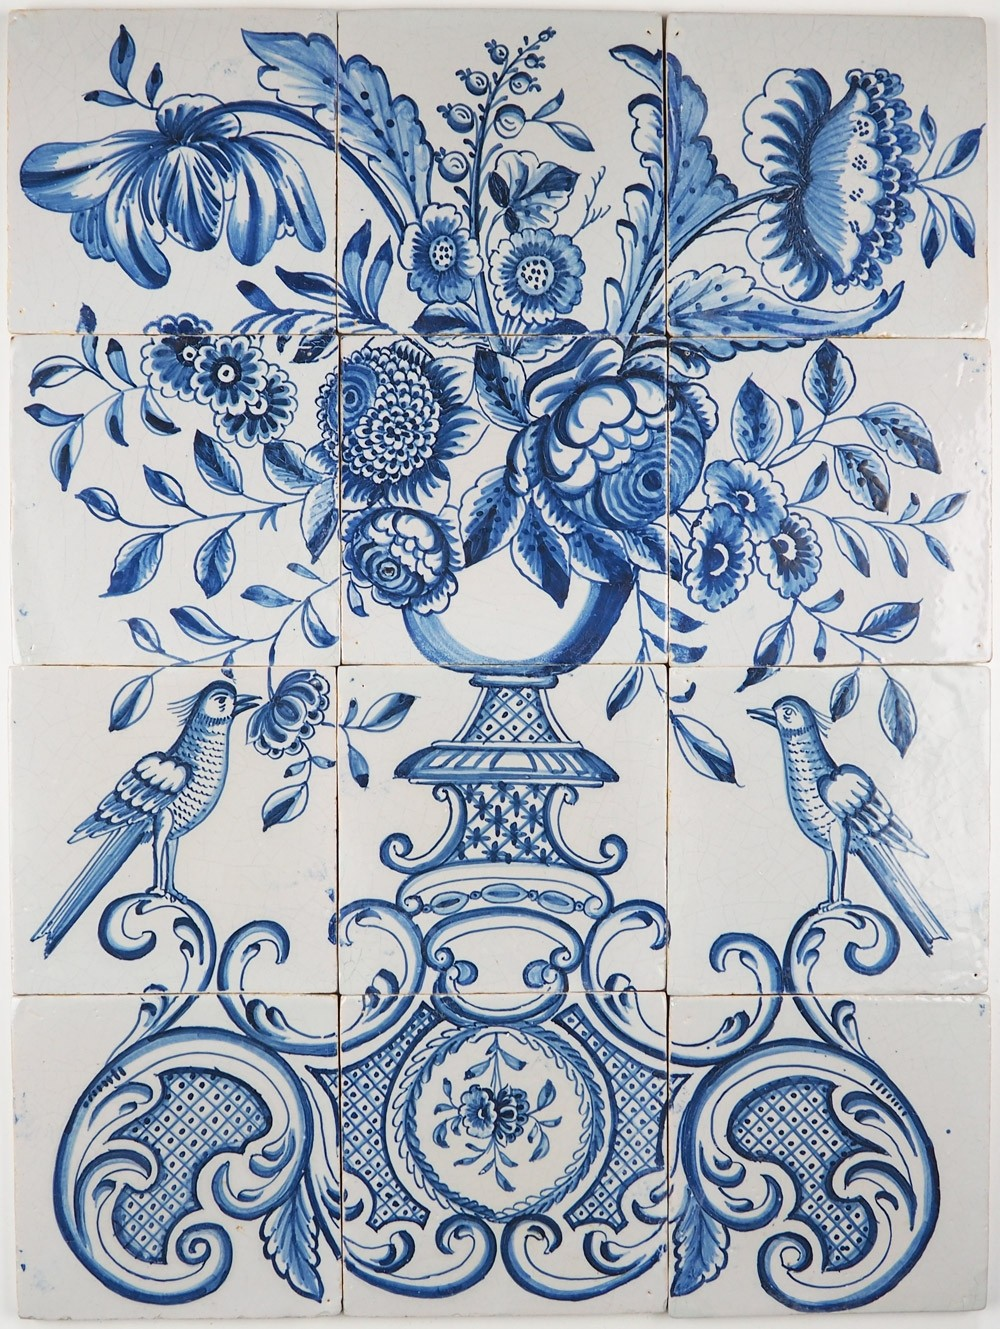 Antique Delft tile mural with a richly decorated flower vase in blue ...